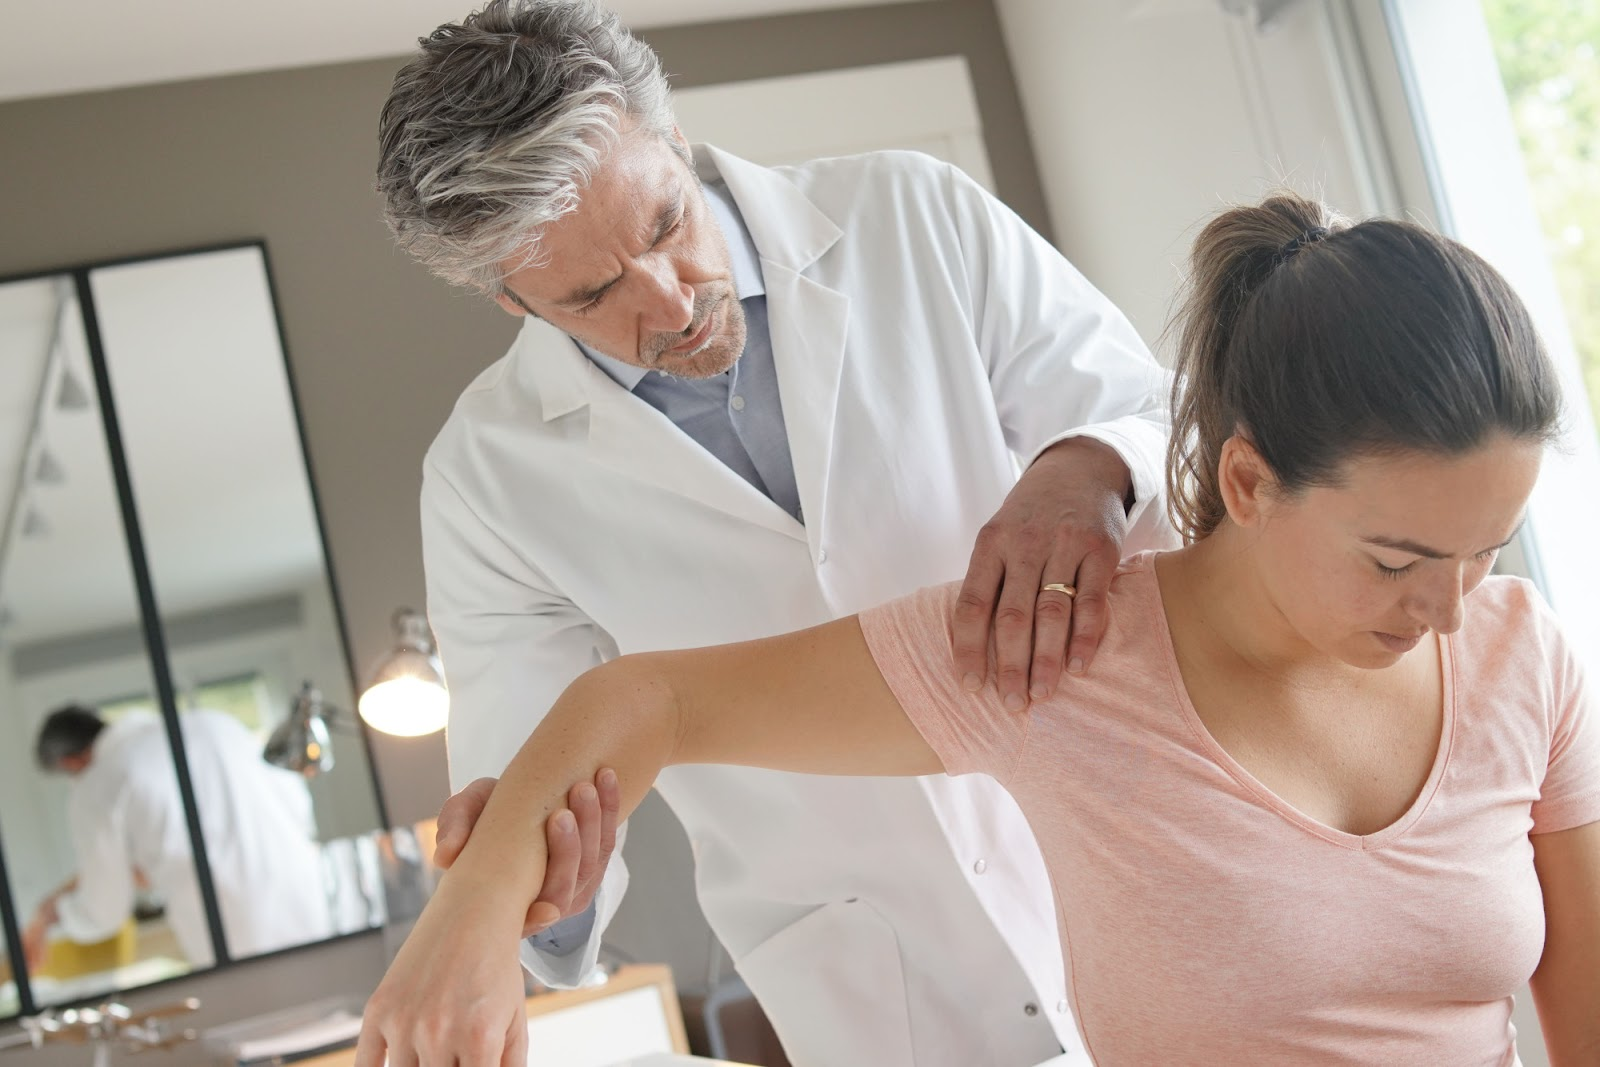 A Complete Guide to Tendonitis: What Is It and How Can Shockwave Therapy Help?